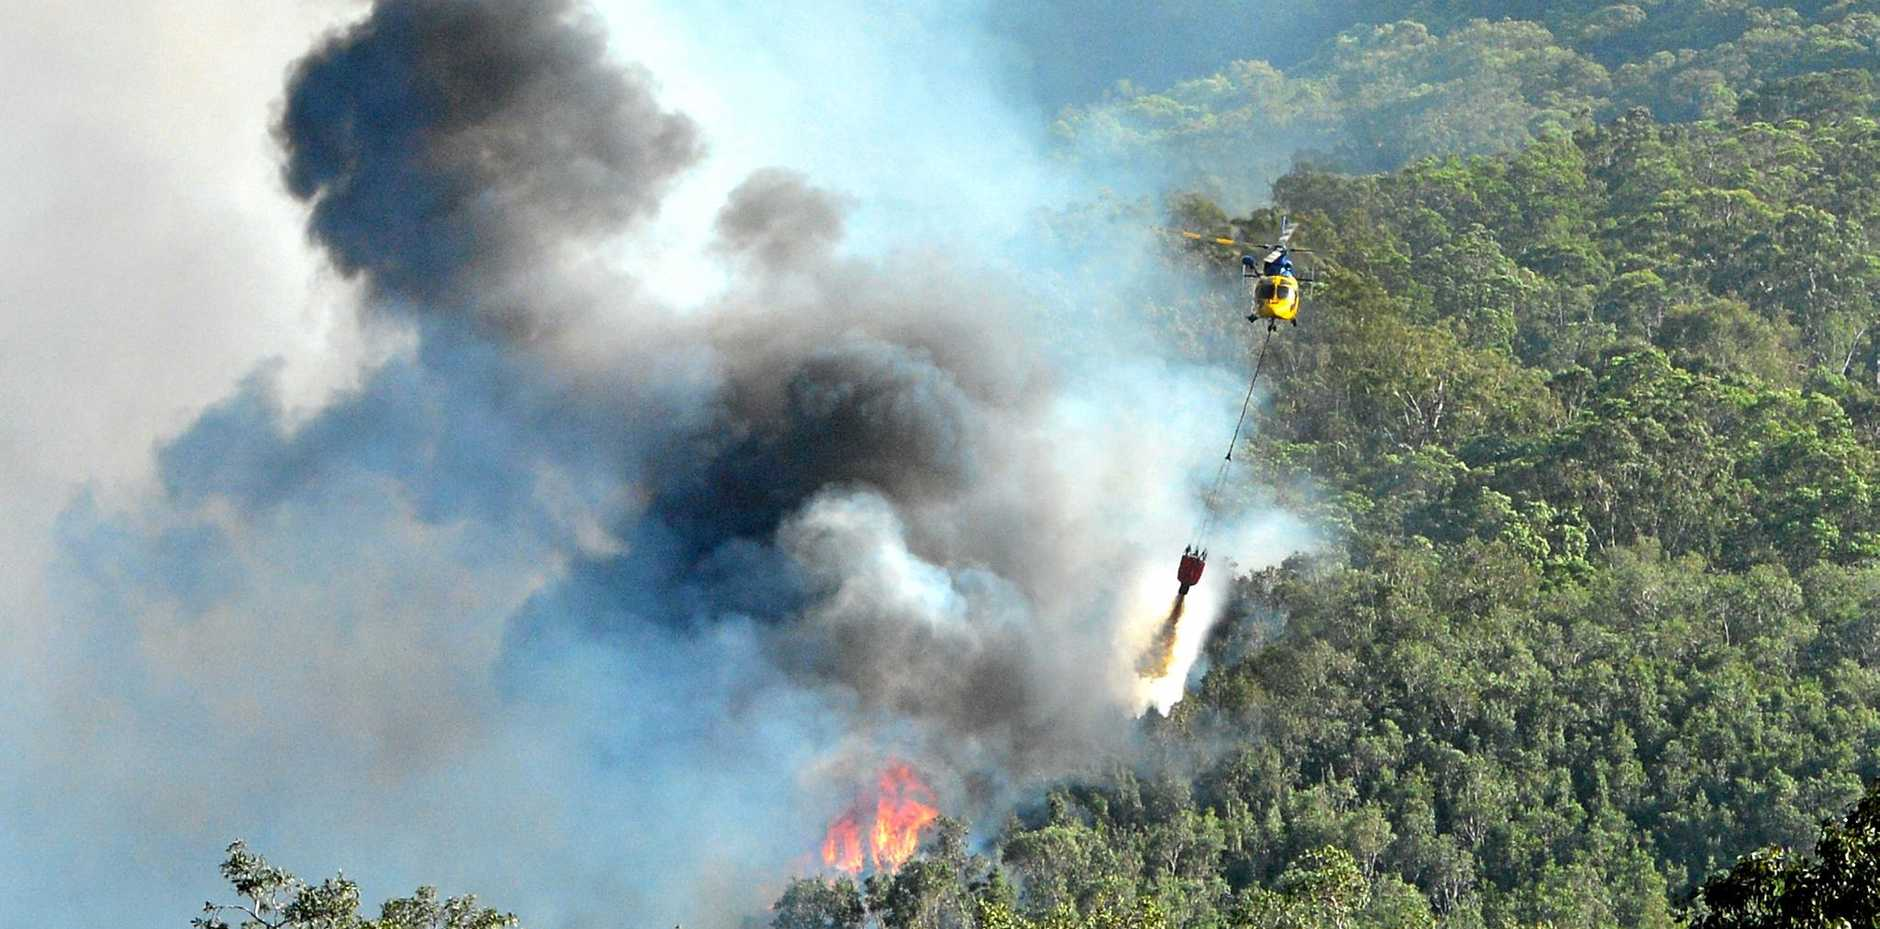 Day 2 of the bushfire near Coolum Industrial Park. Water bombing continued near Arcoona Road.